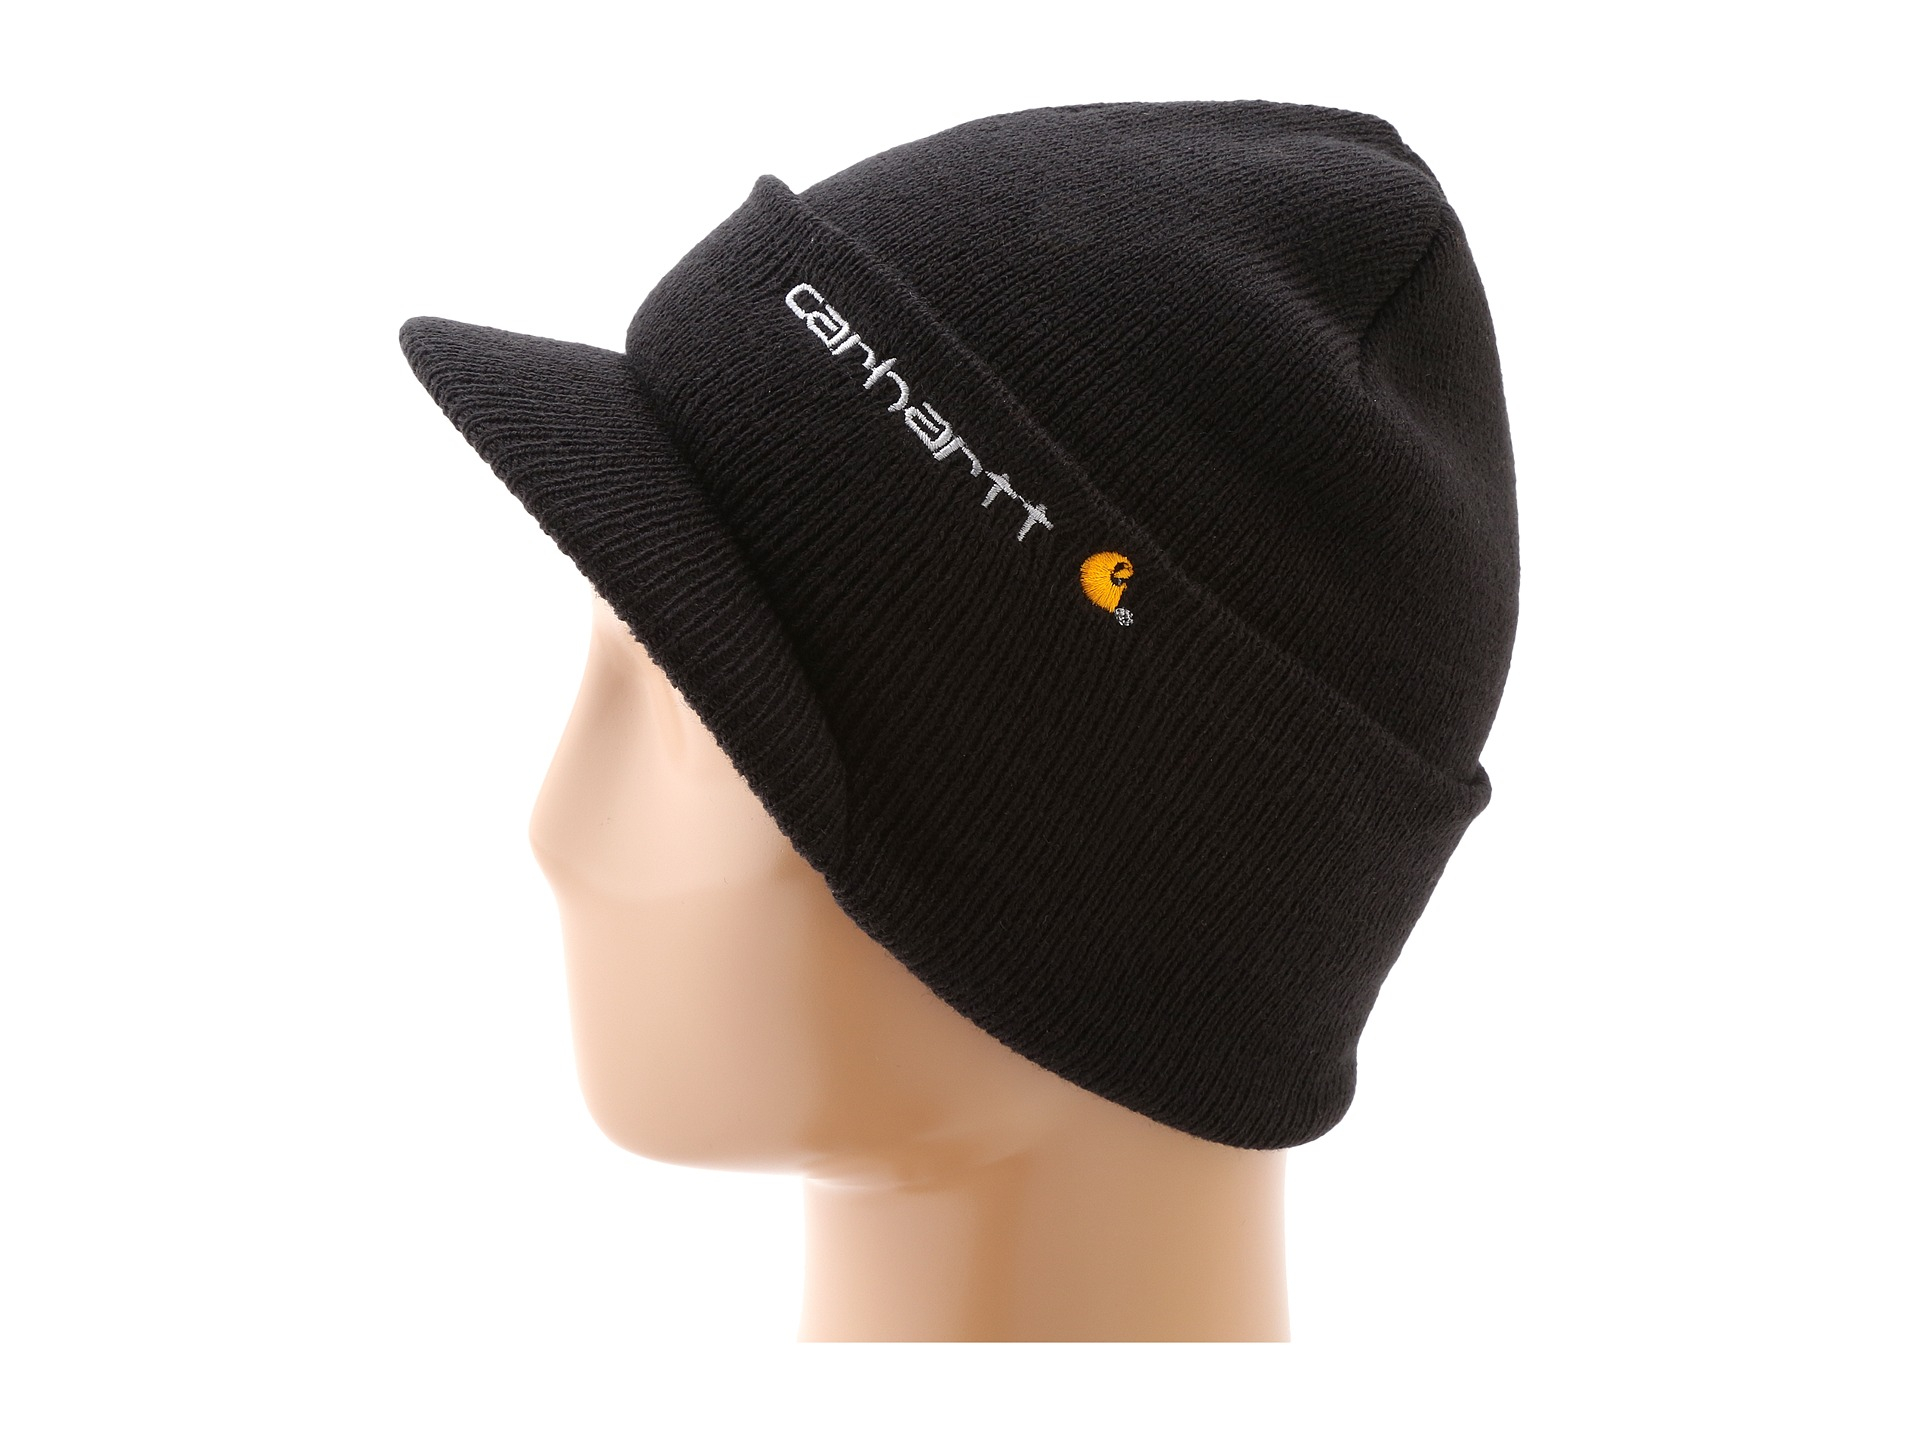 Lyst - Carhartt Knit Hat With Visor in Black for Men f32ceffc5a7